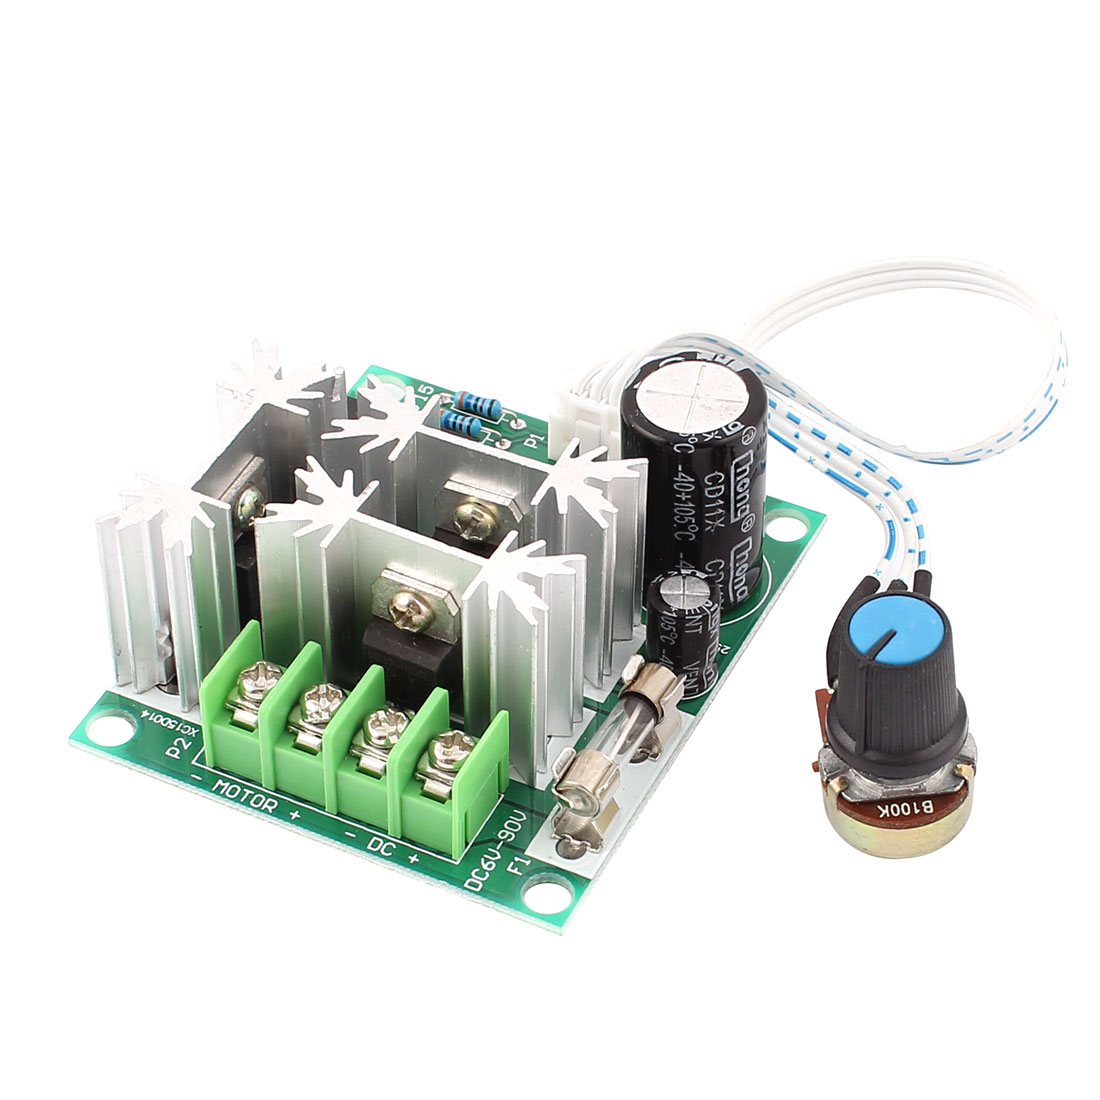 Unique Bargains 6v 90v 15a Pulse Width Modulator Pwm Dc Motor Speed Is A Circuit To Control Uses Modulation Controller Switch